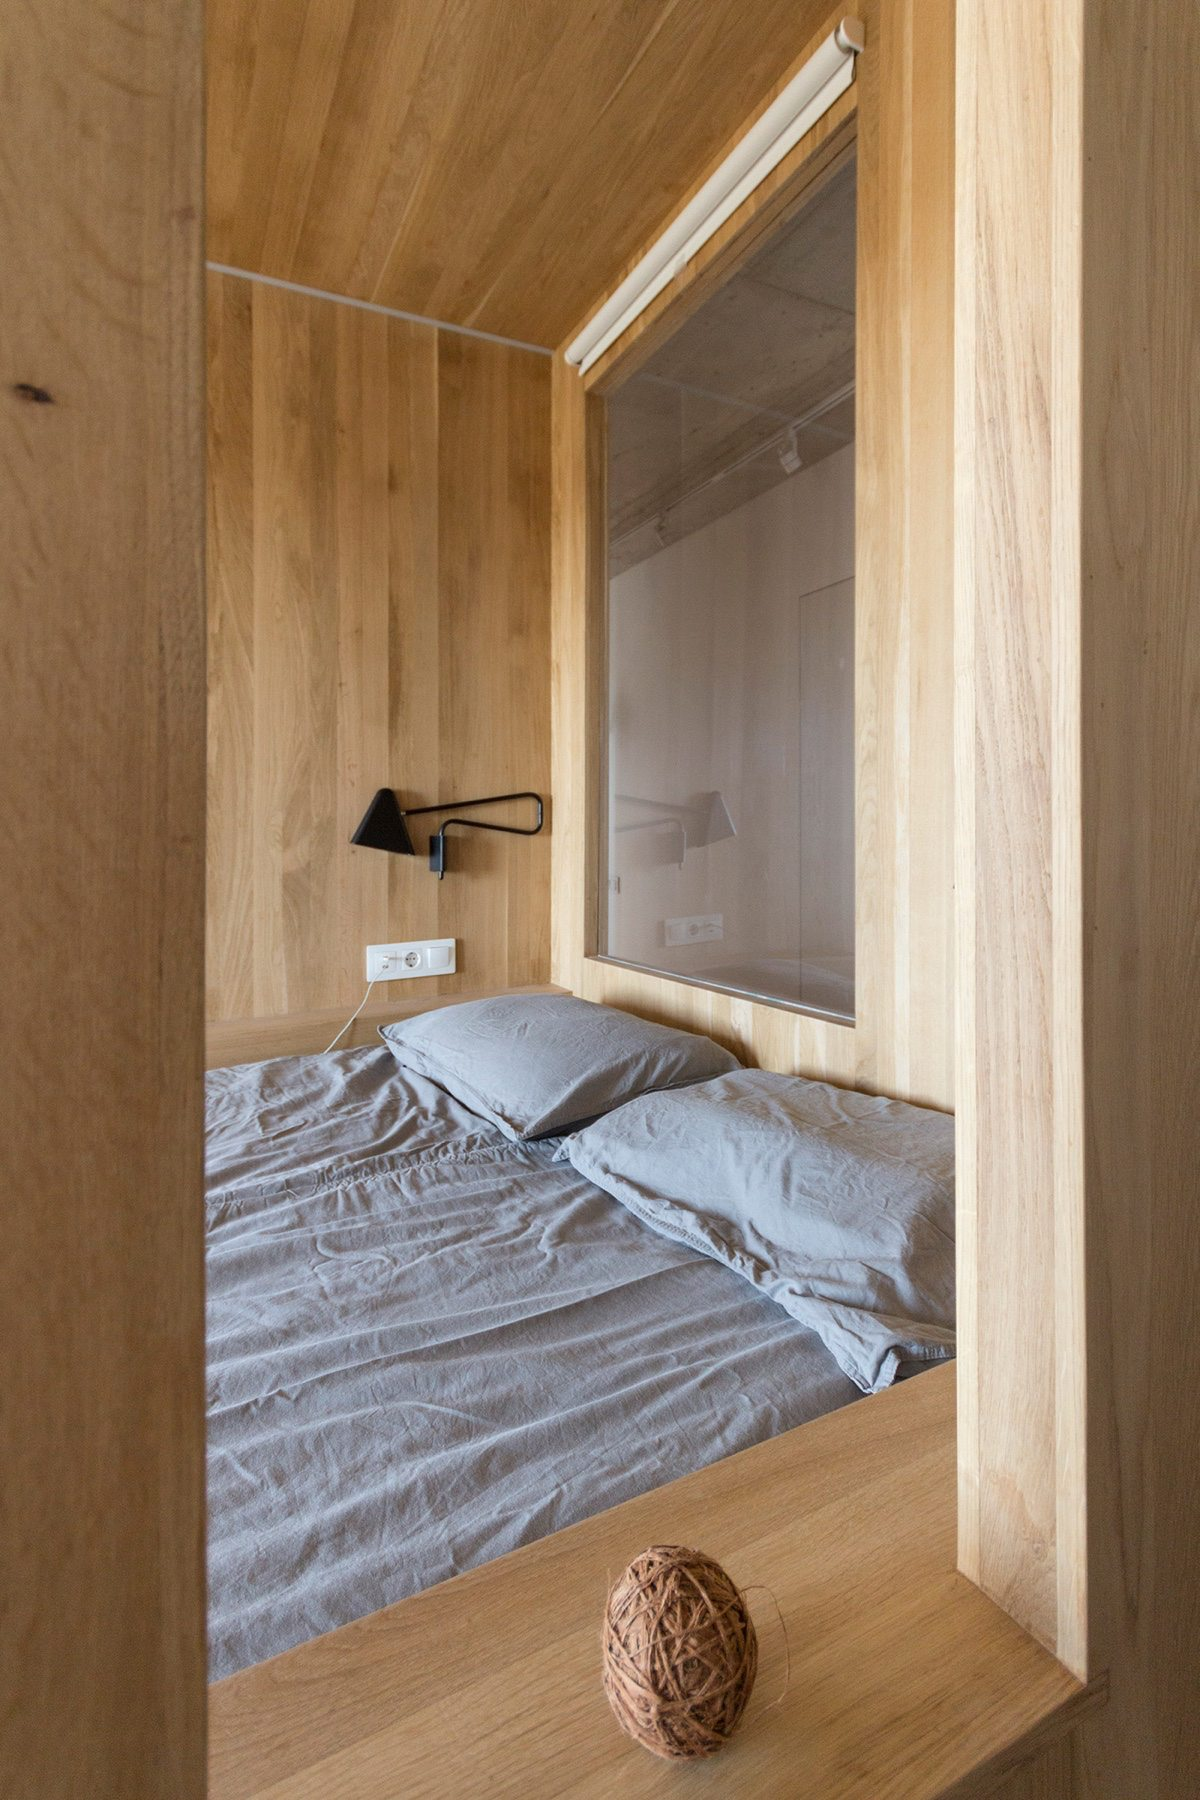 Side View Grey Bedroom Apartments Under Sqm Wooden Open Walls - Super small studio apartment under 50 square meters includes floor plan